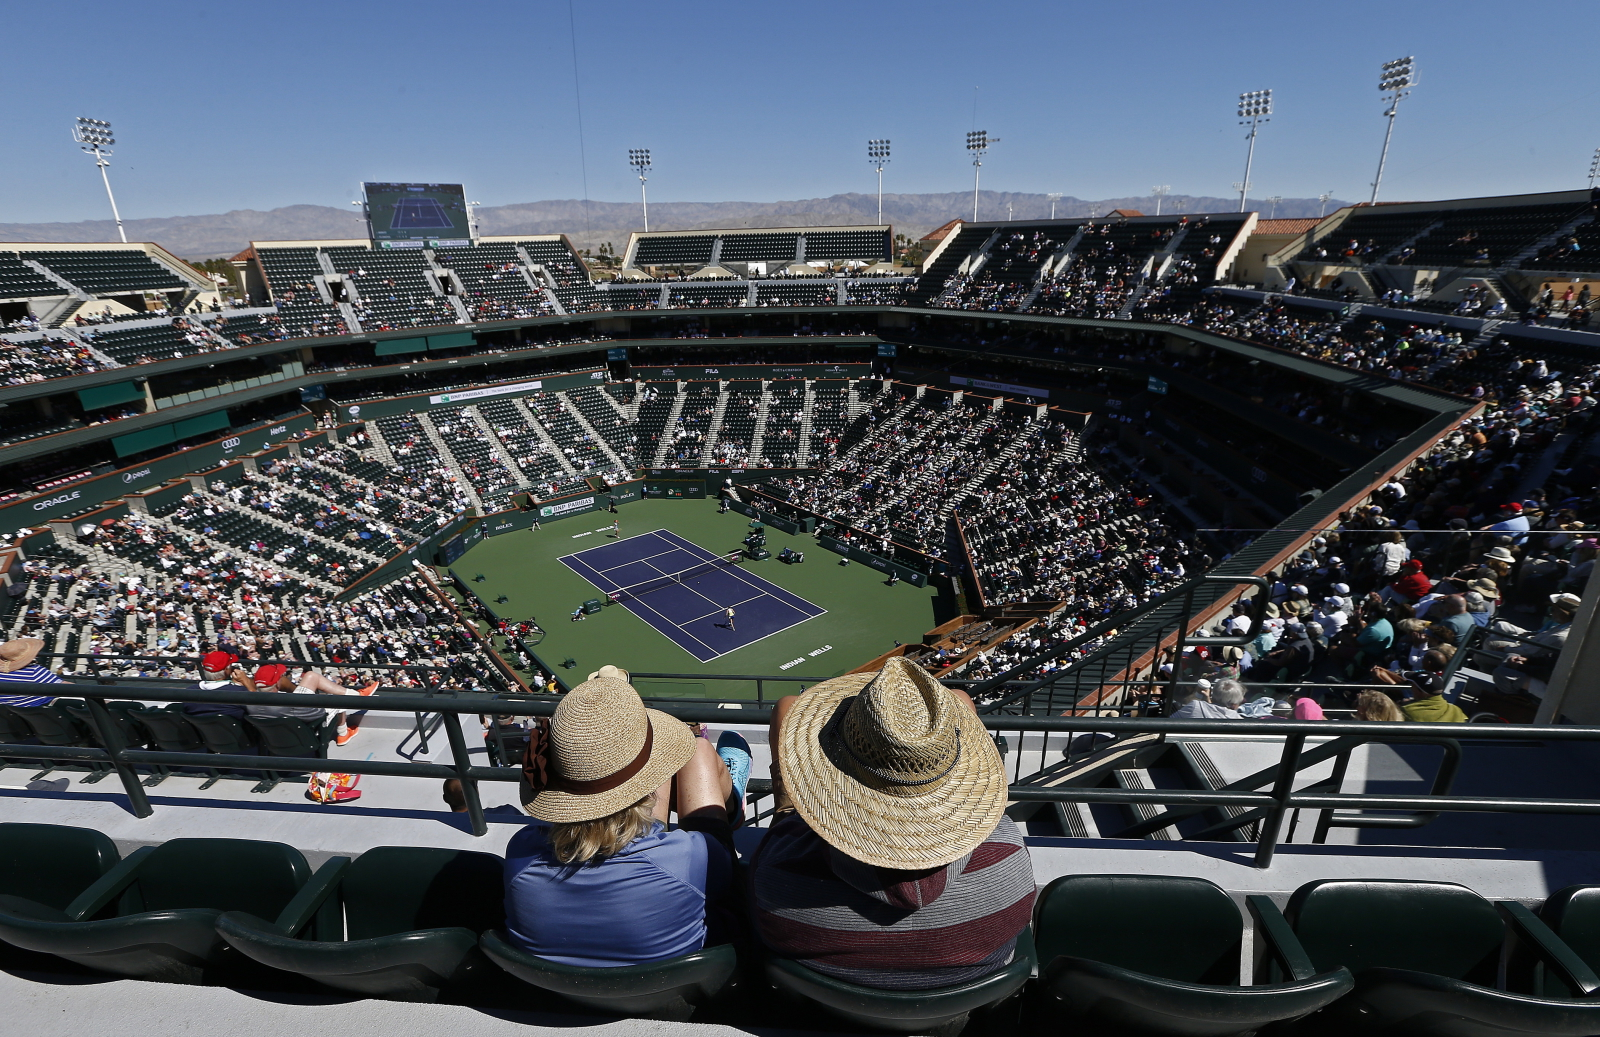 BNP Paribas Open. fot. EPA/LARRY W. SMITH